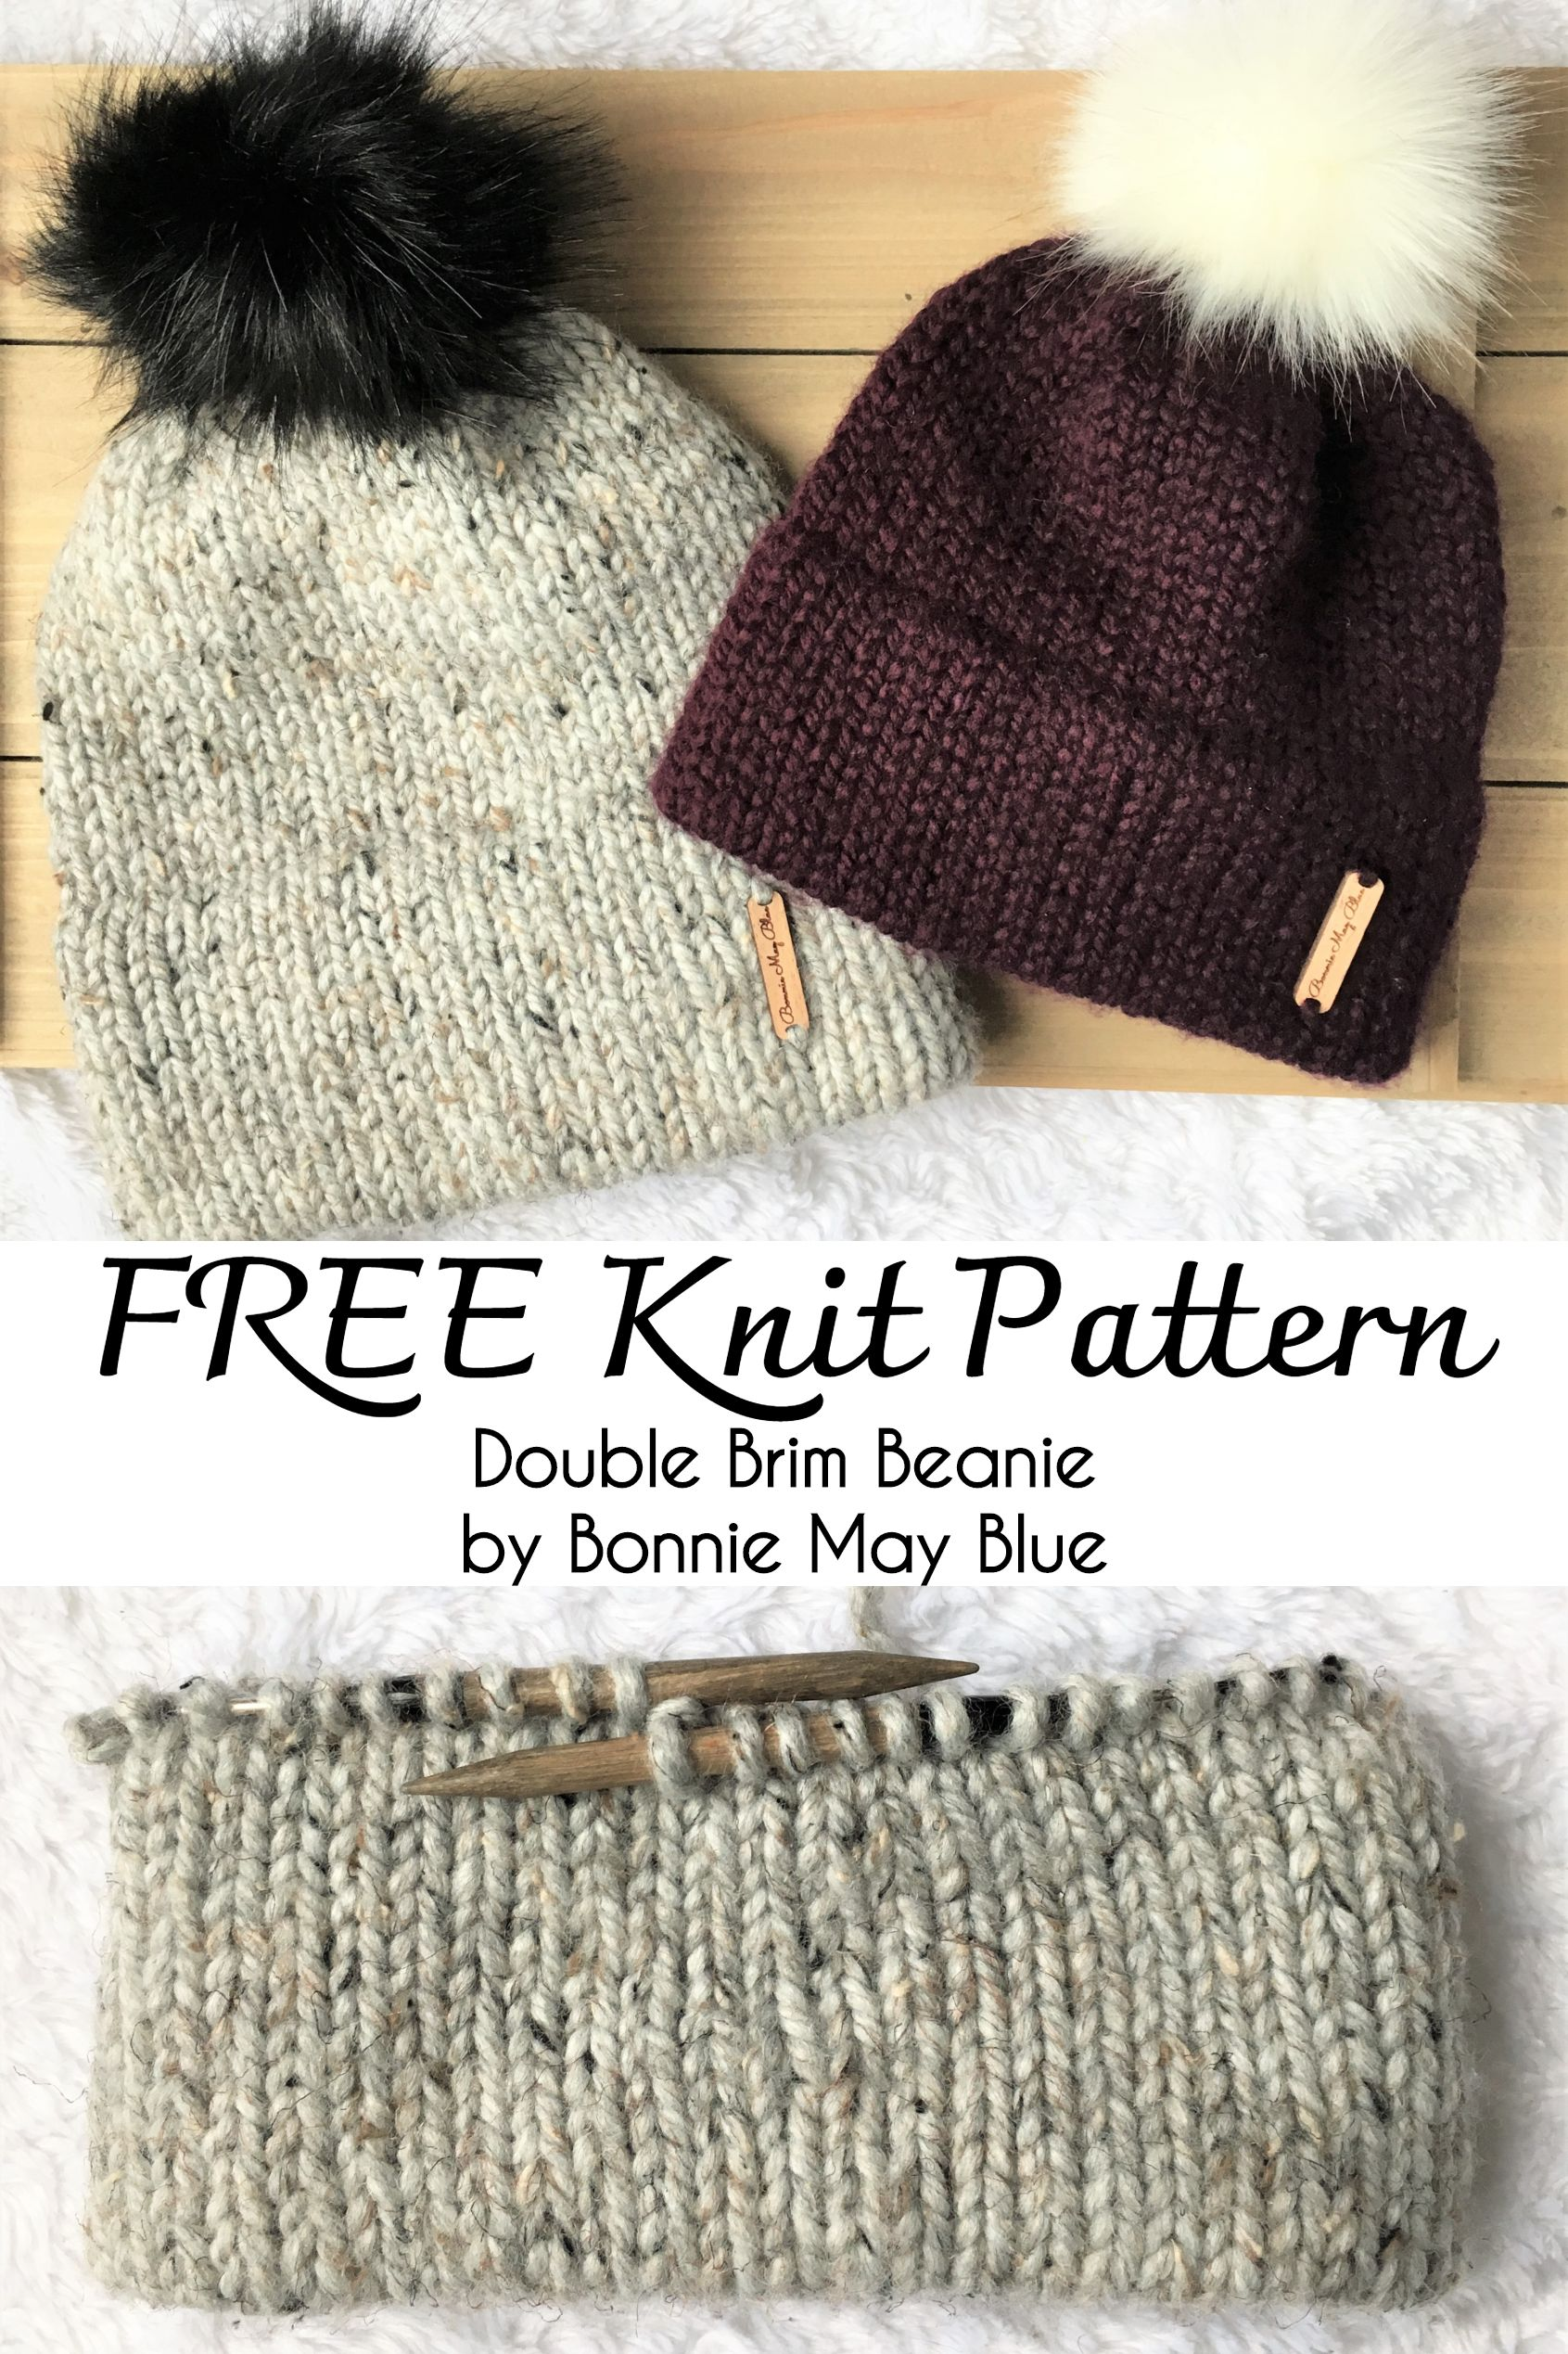 Free Knitting Pattern For The Classic Double Brim Beanie Made With A Provisiona Knit Beanie Pattern Knitting Patterns Free Sweater Knitting Patterns Free Hats